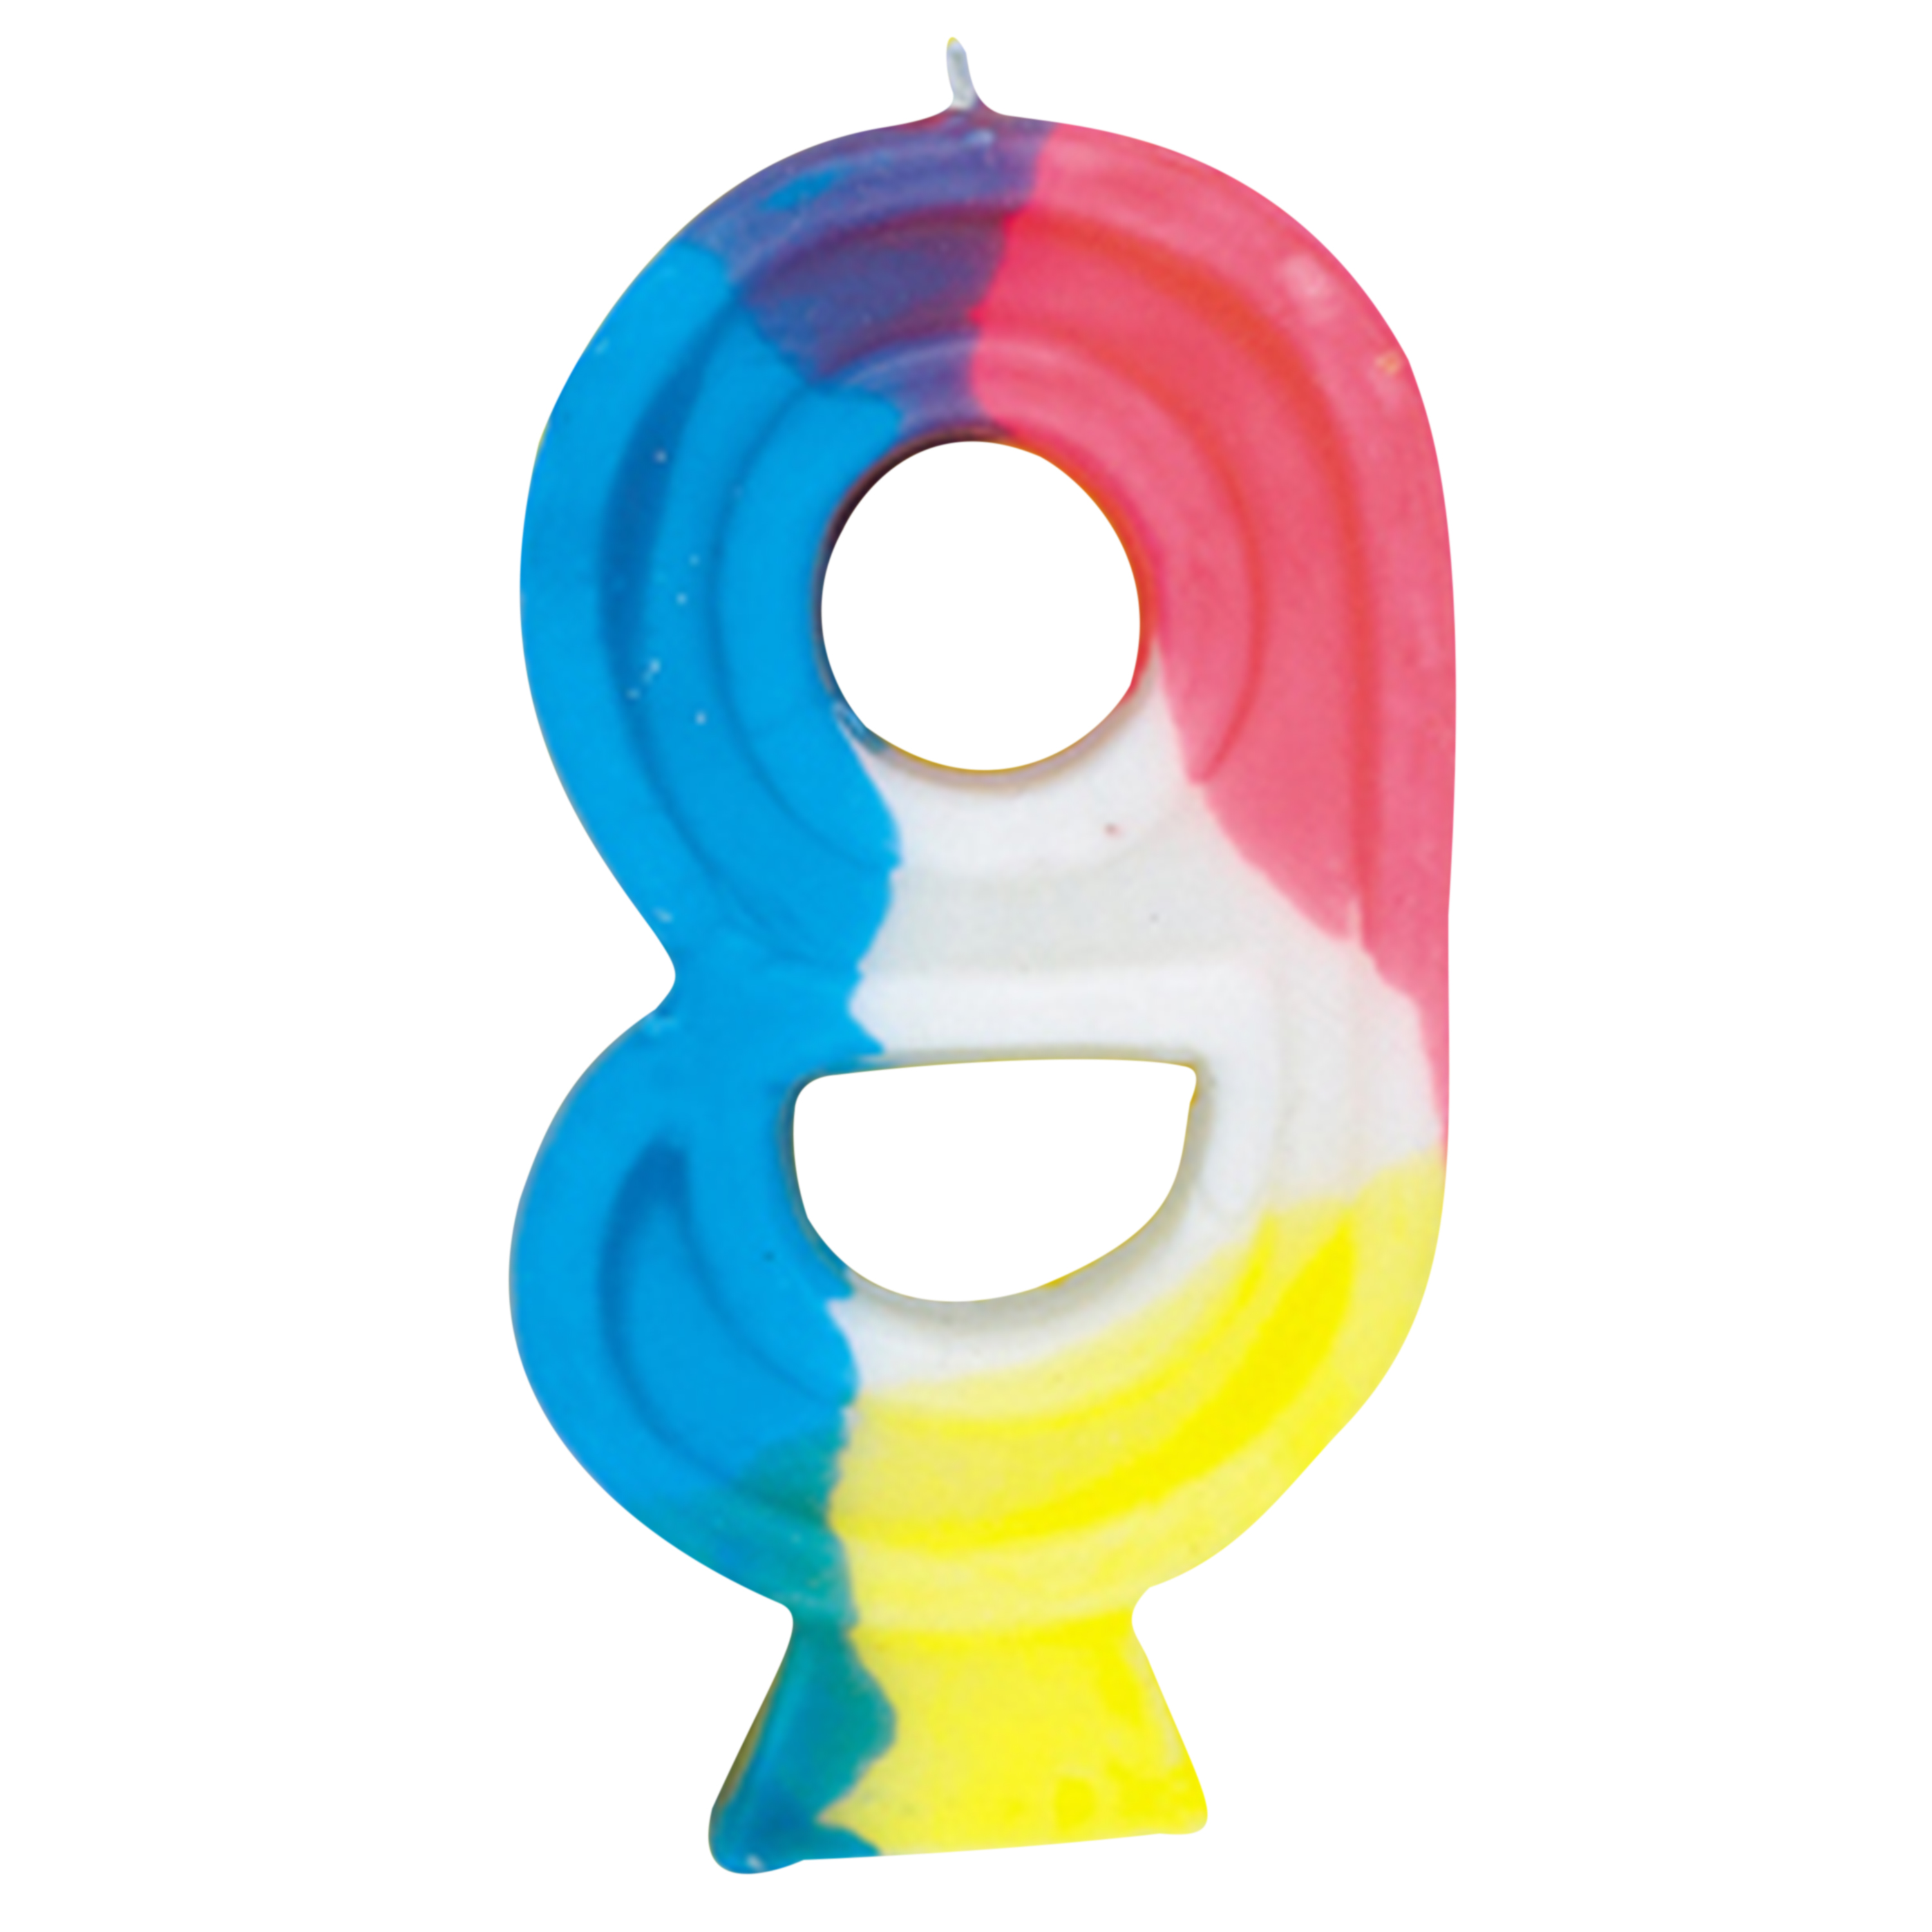 Number 9 Birthday Candle, 2.75 in, Multicolor, 1ct